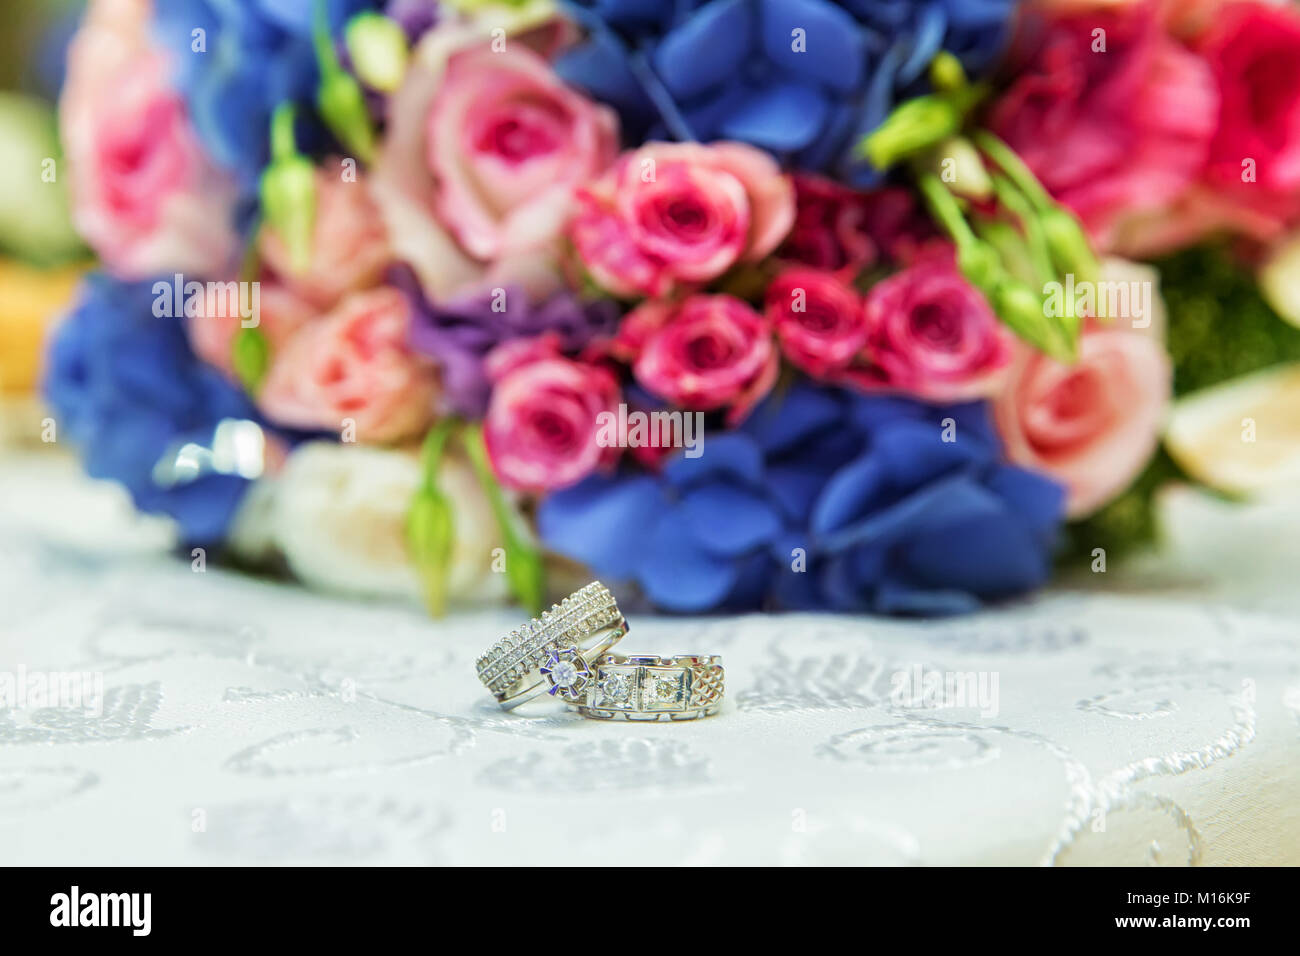 Mens wedding rings stock photos mens wedding rings stock images mens and bridal rings are on the background of a multi colored wedding bouquet izmirmasajfo